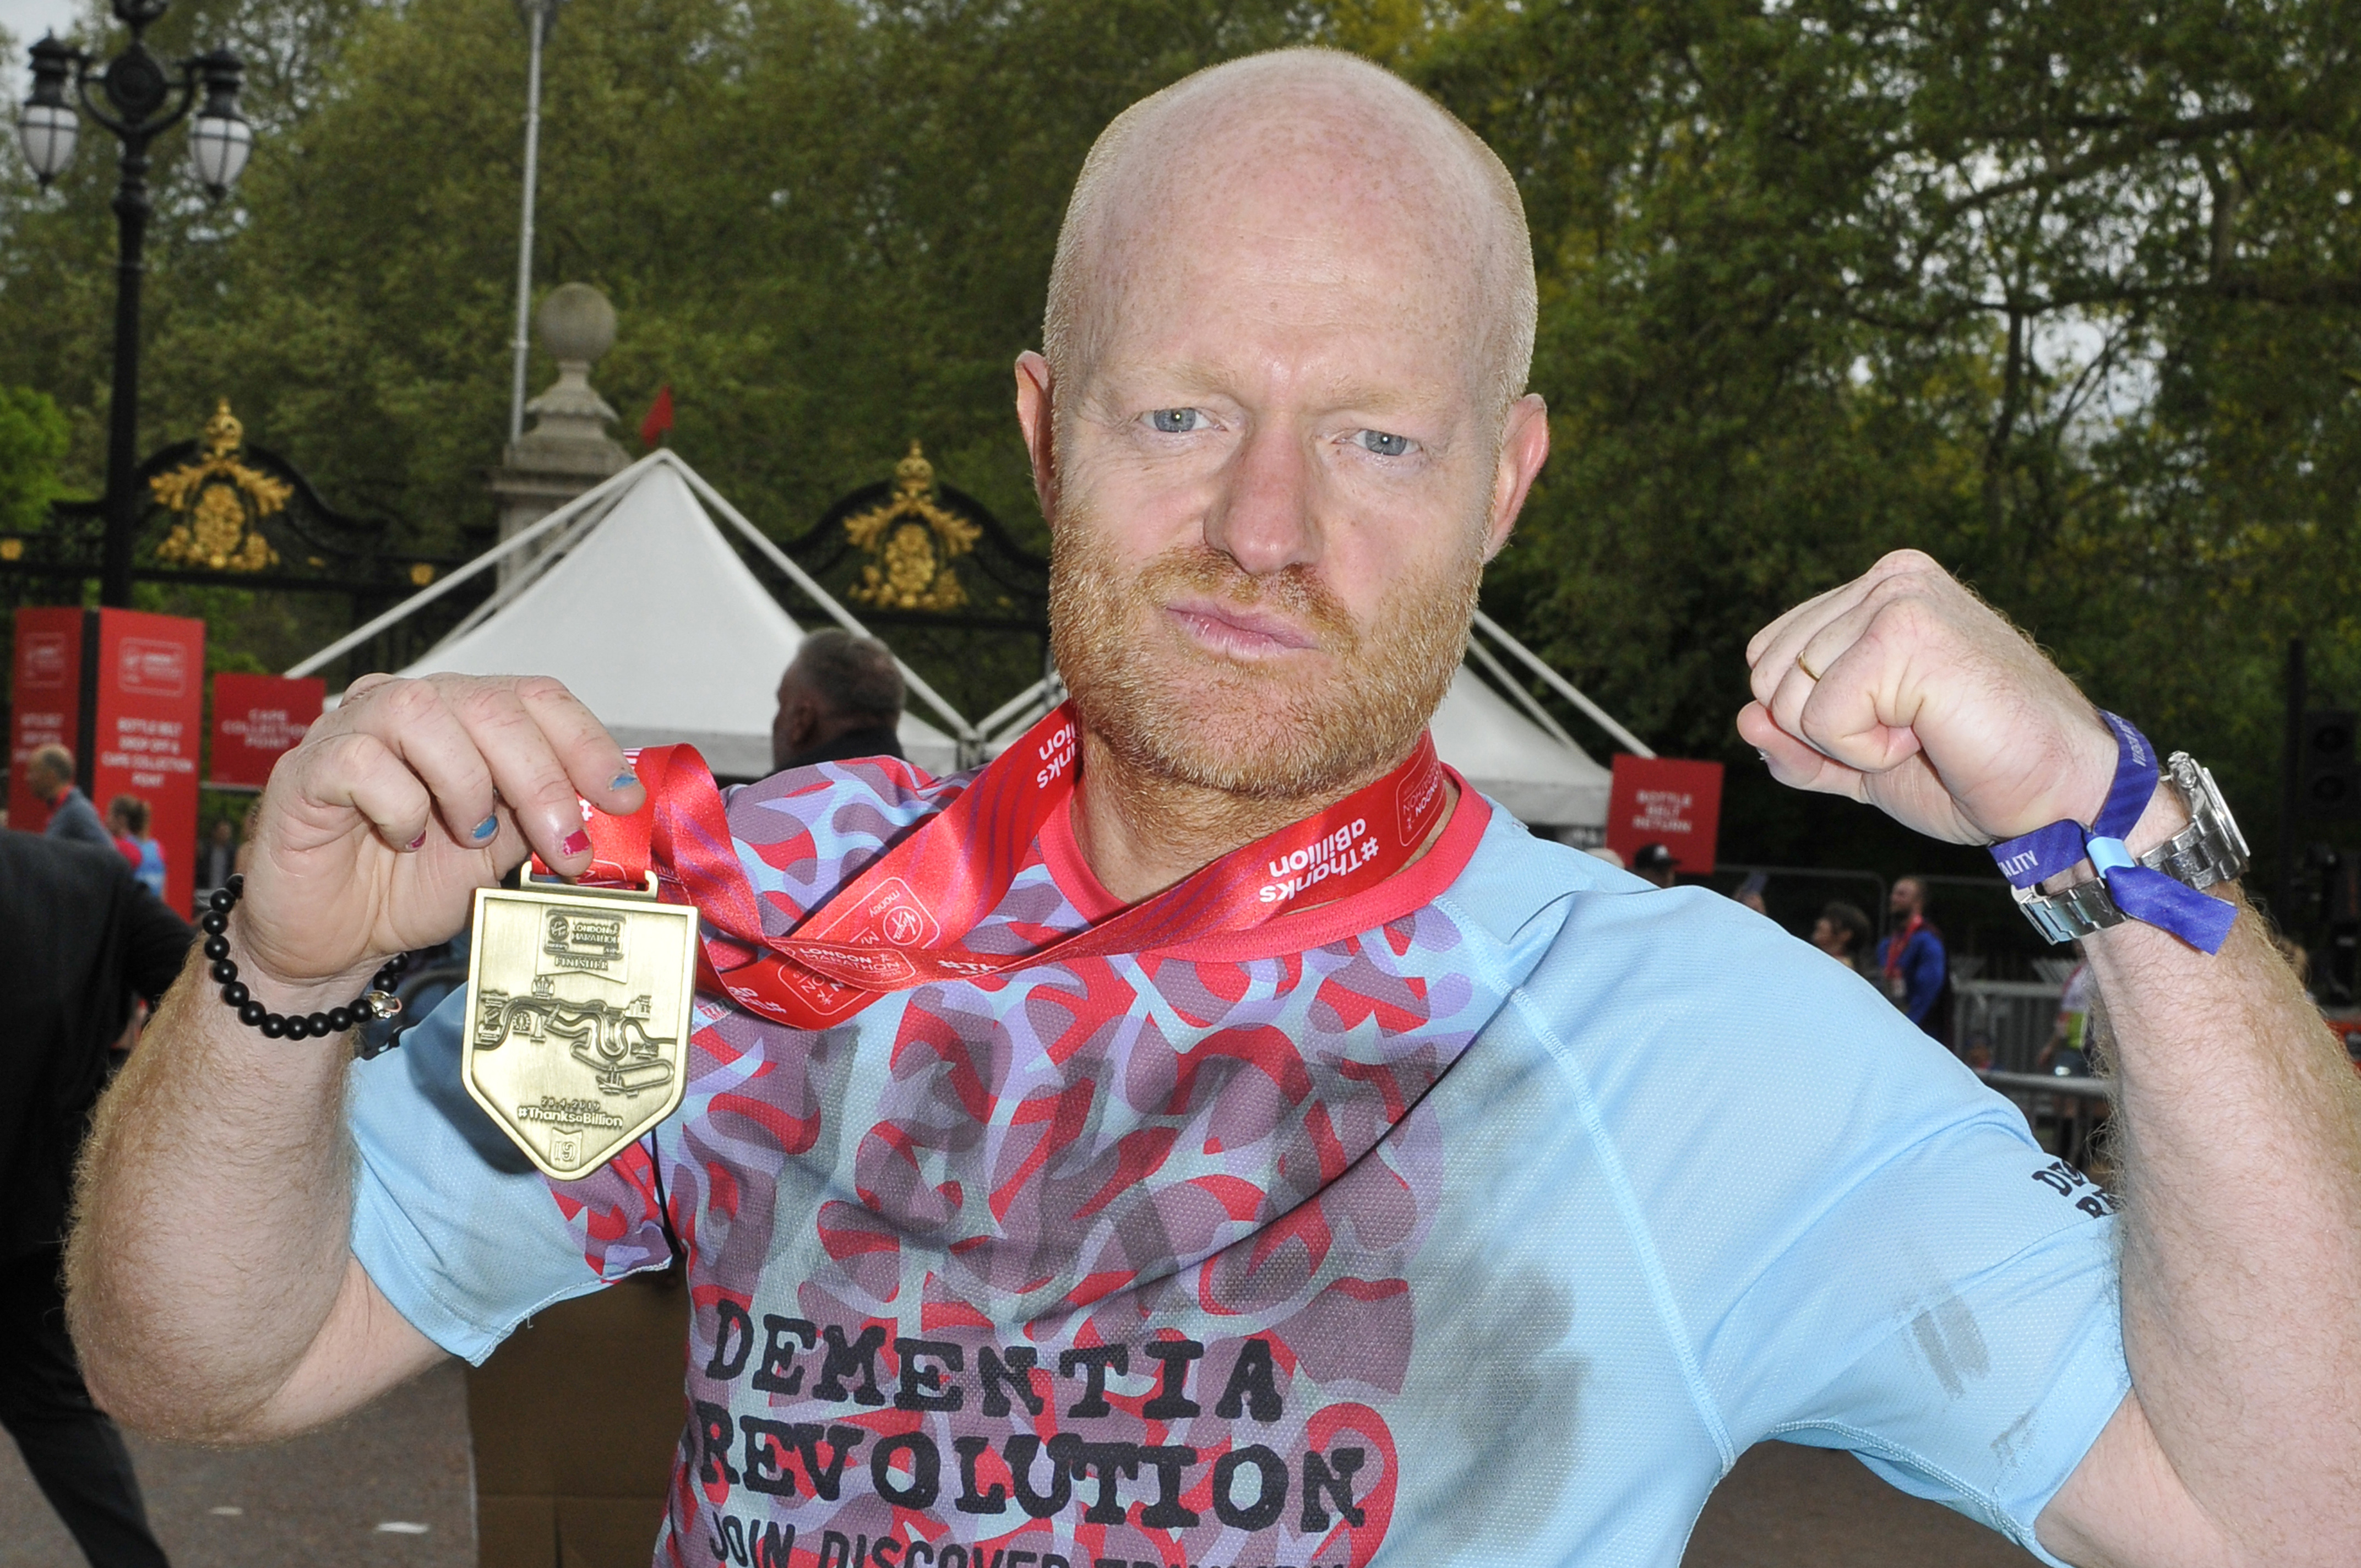 EastEnders star Jake Wood shares sweet photo from family holiday